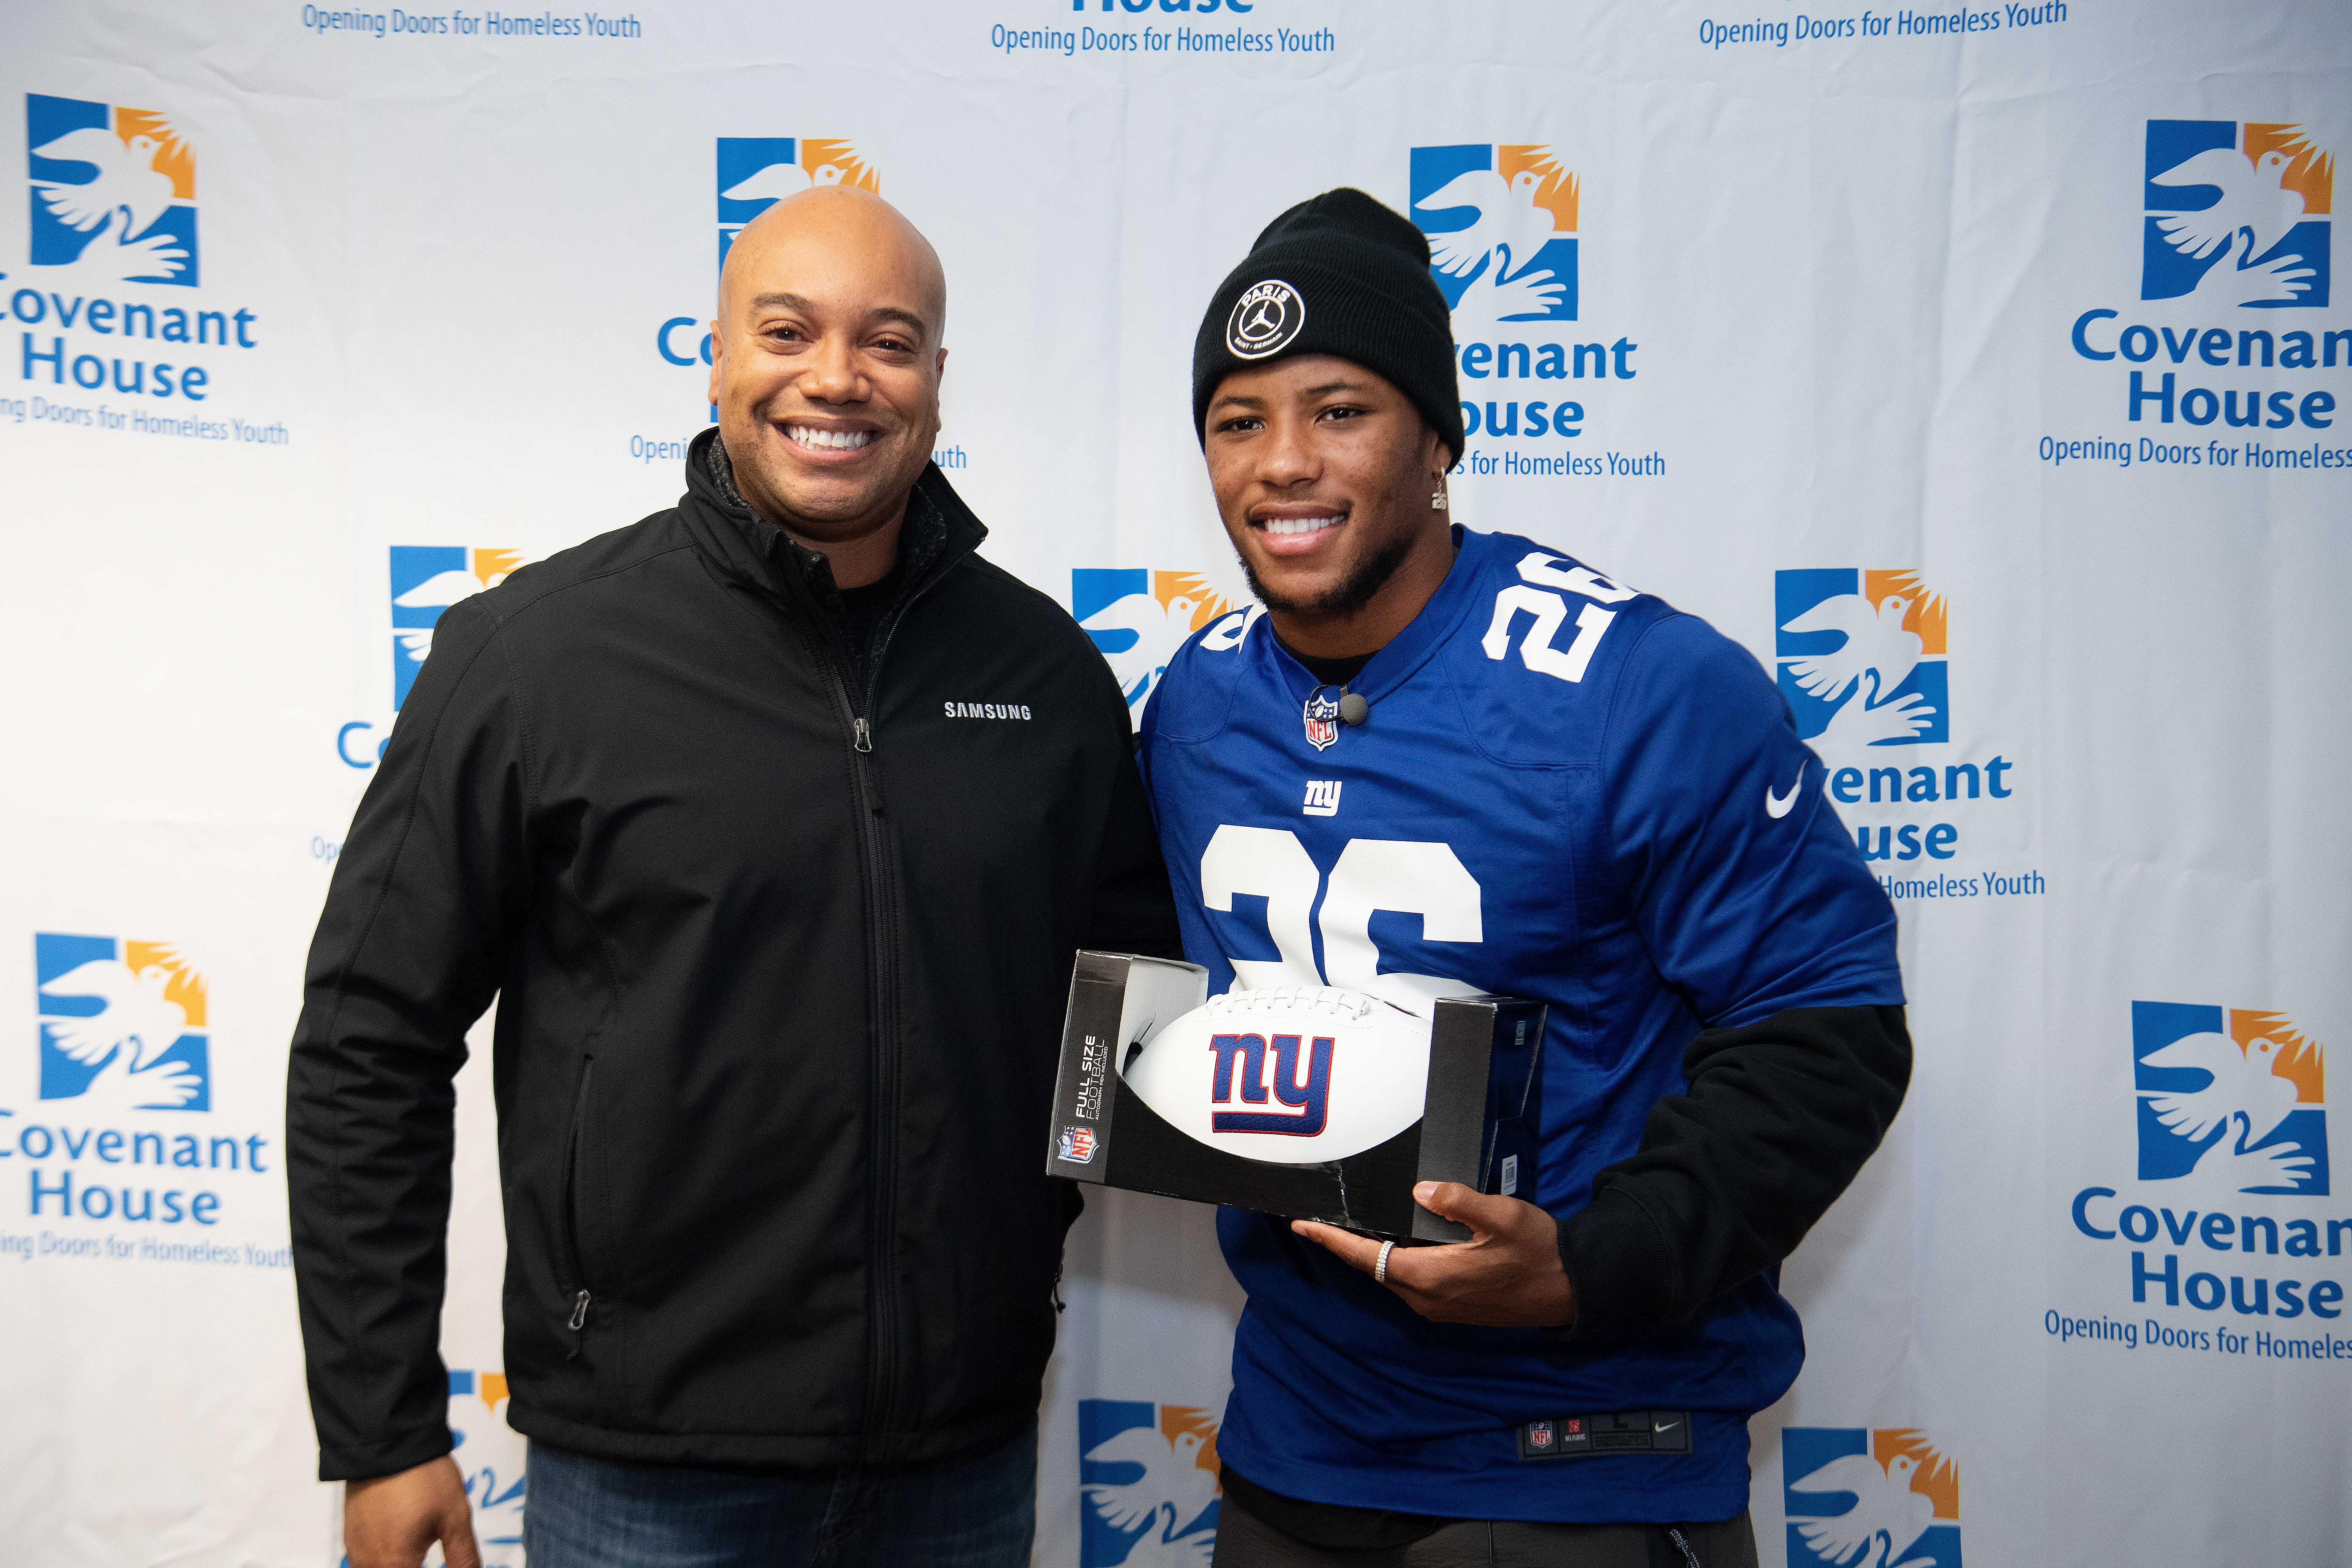 Jamal Haughton and pro-football player Saquon Barkley at the Covenant House New Jersey Executive Sleep Out 2019